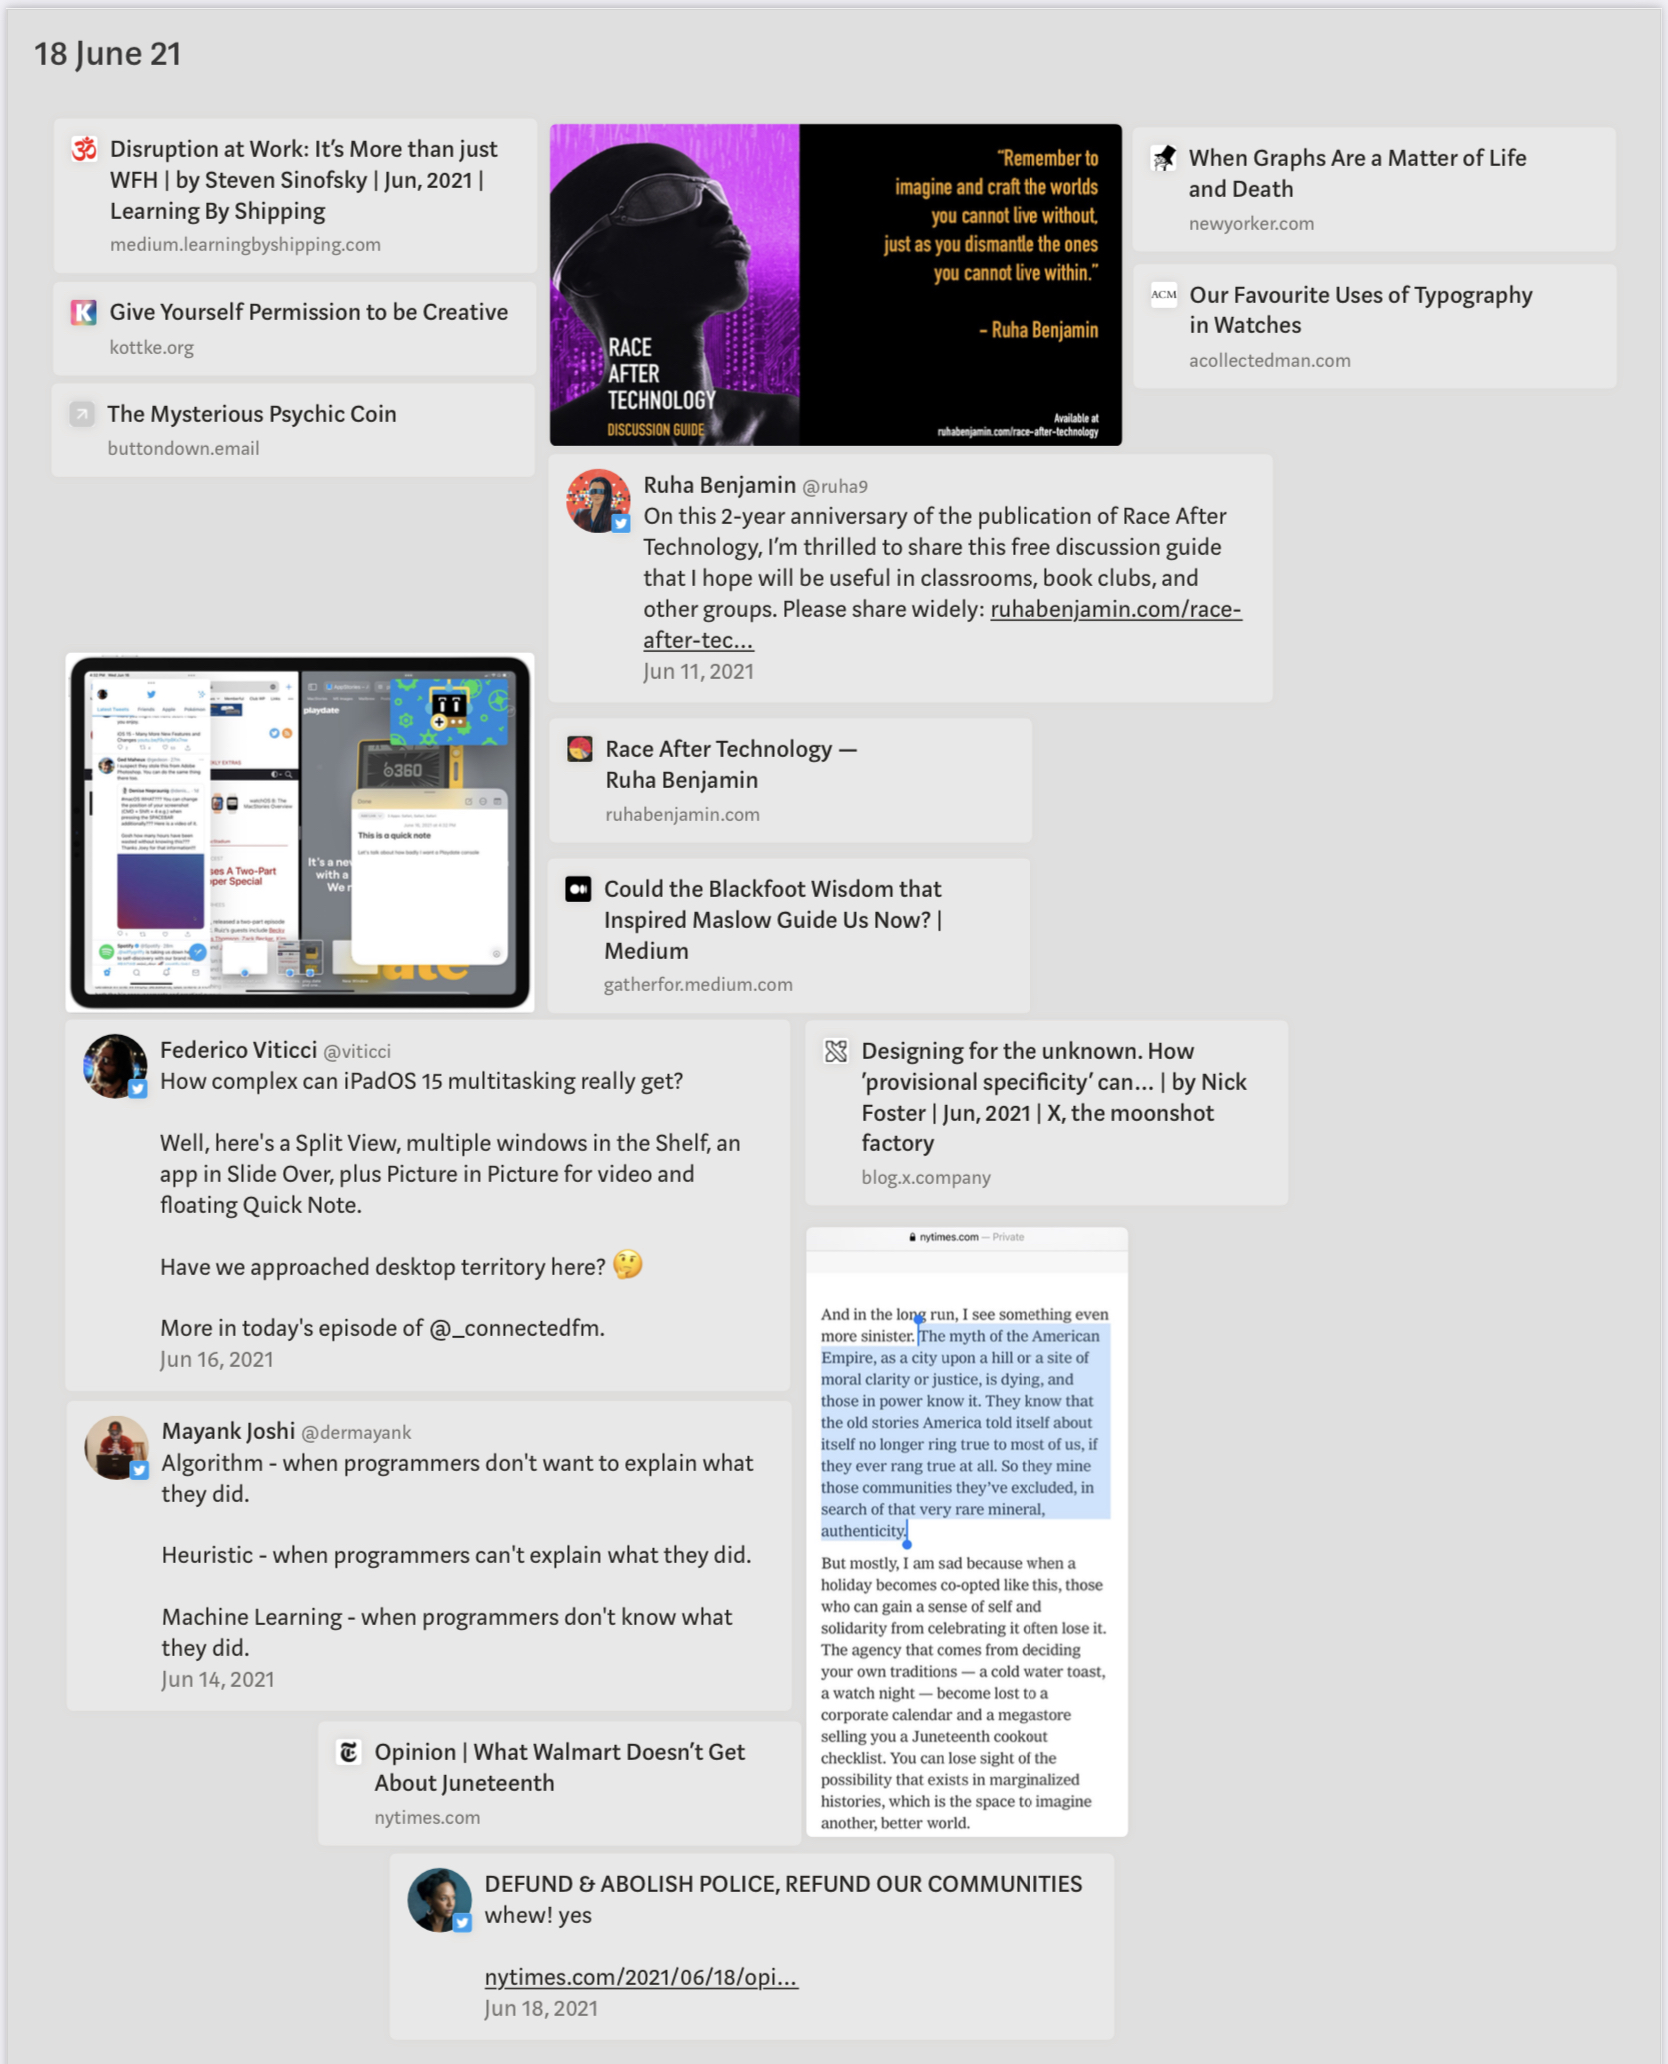 Screenshot of interesting Reads which has passed the eyes over the past week